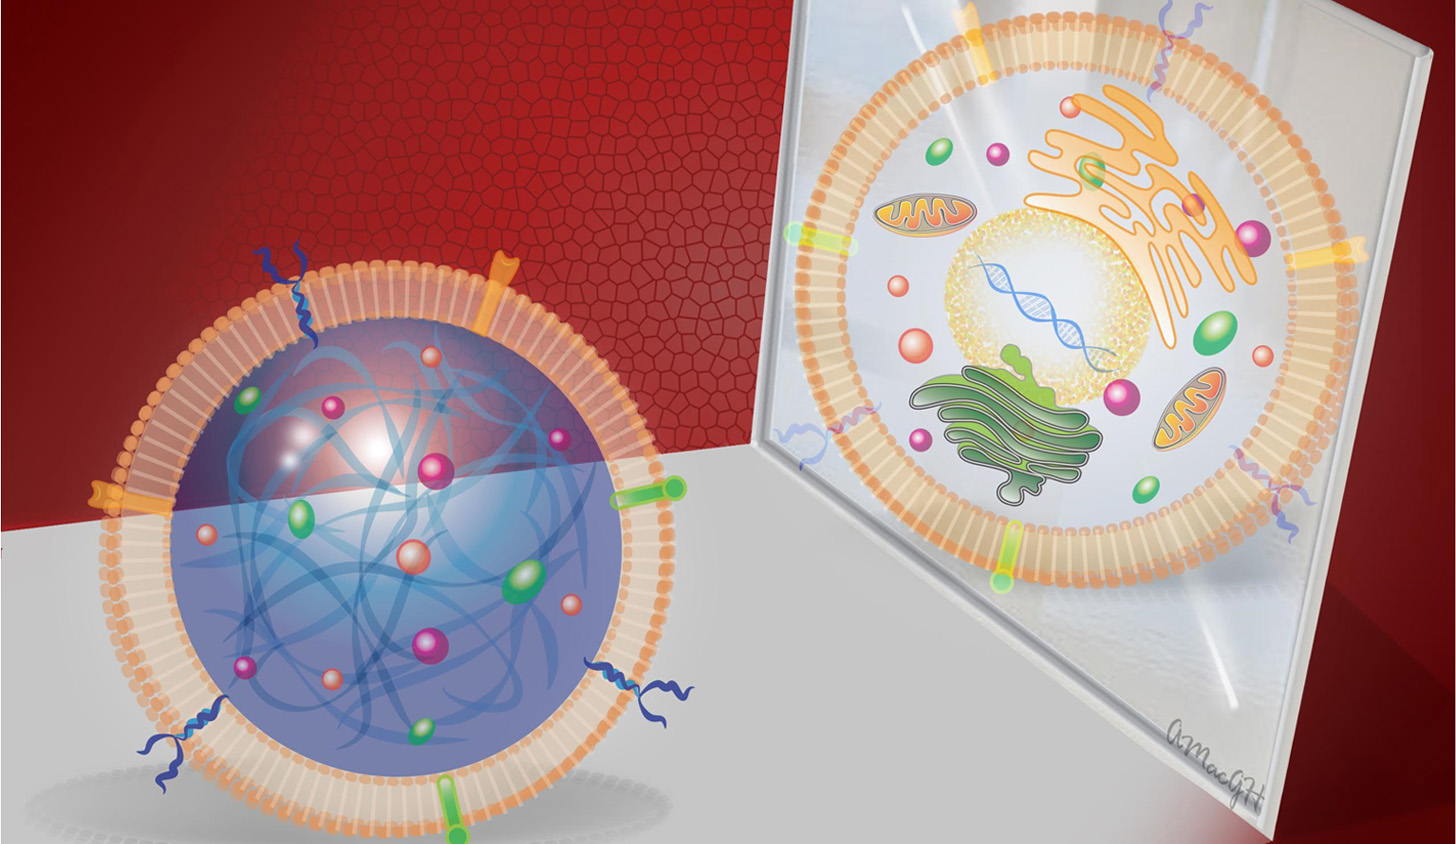 synthetic stem cells